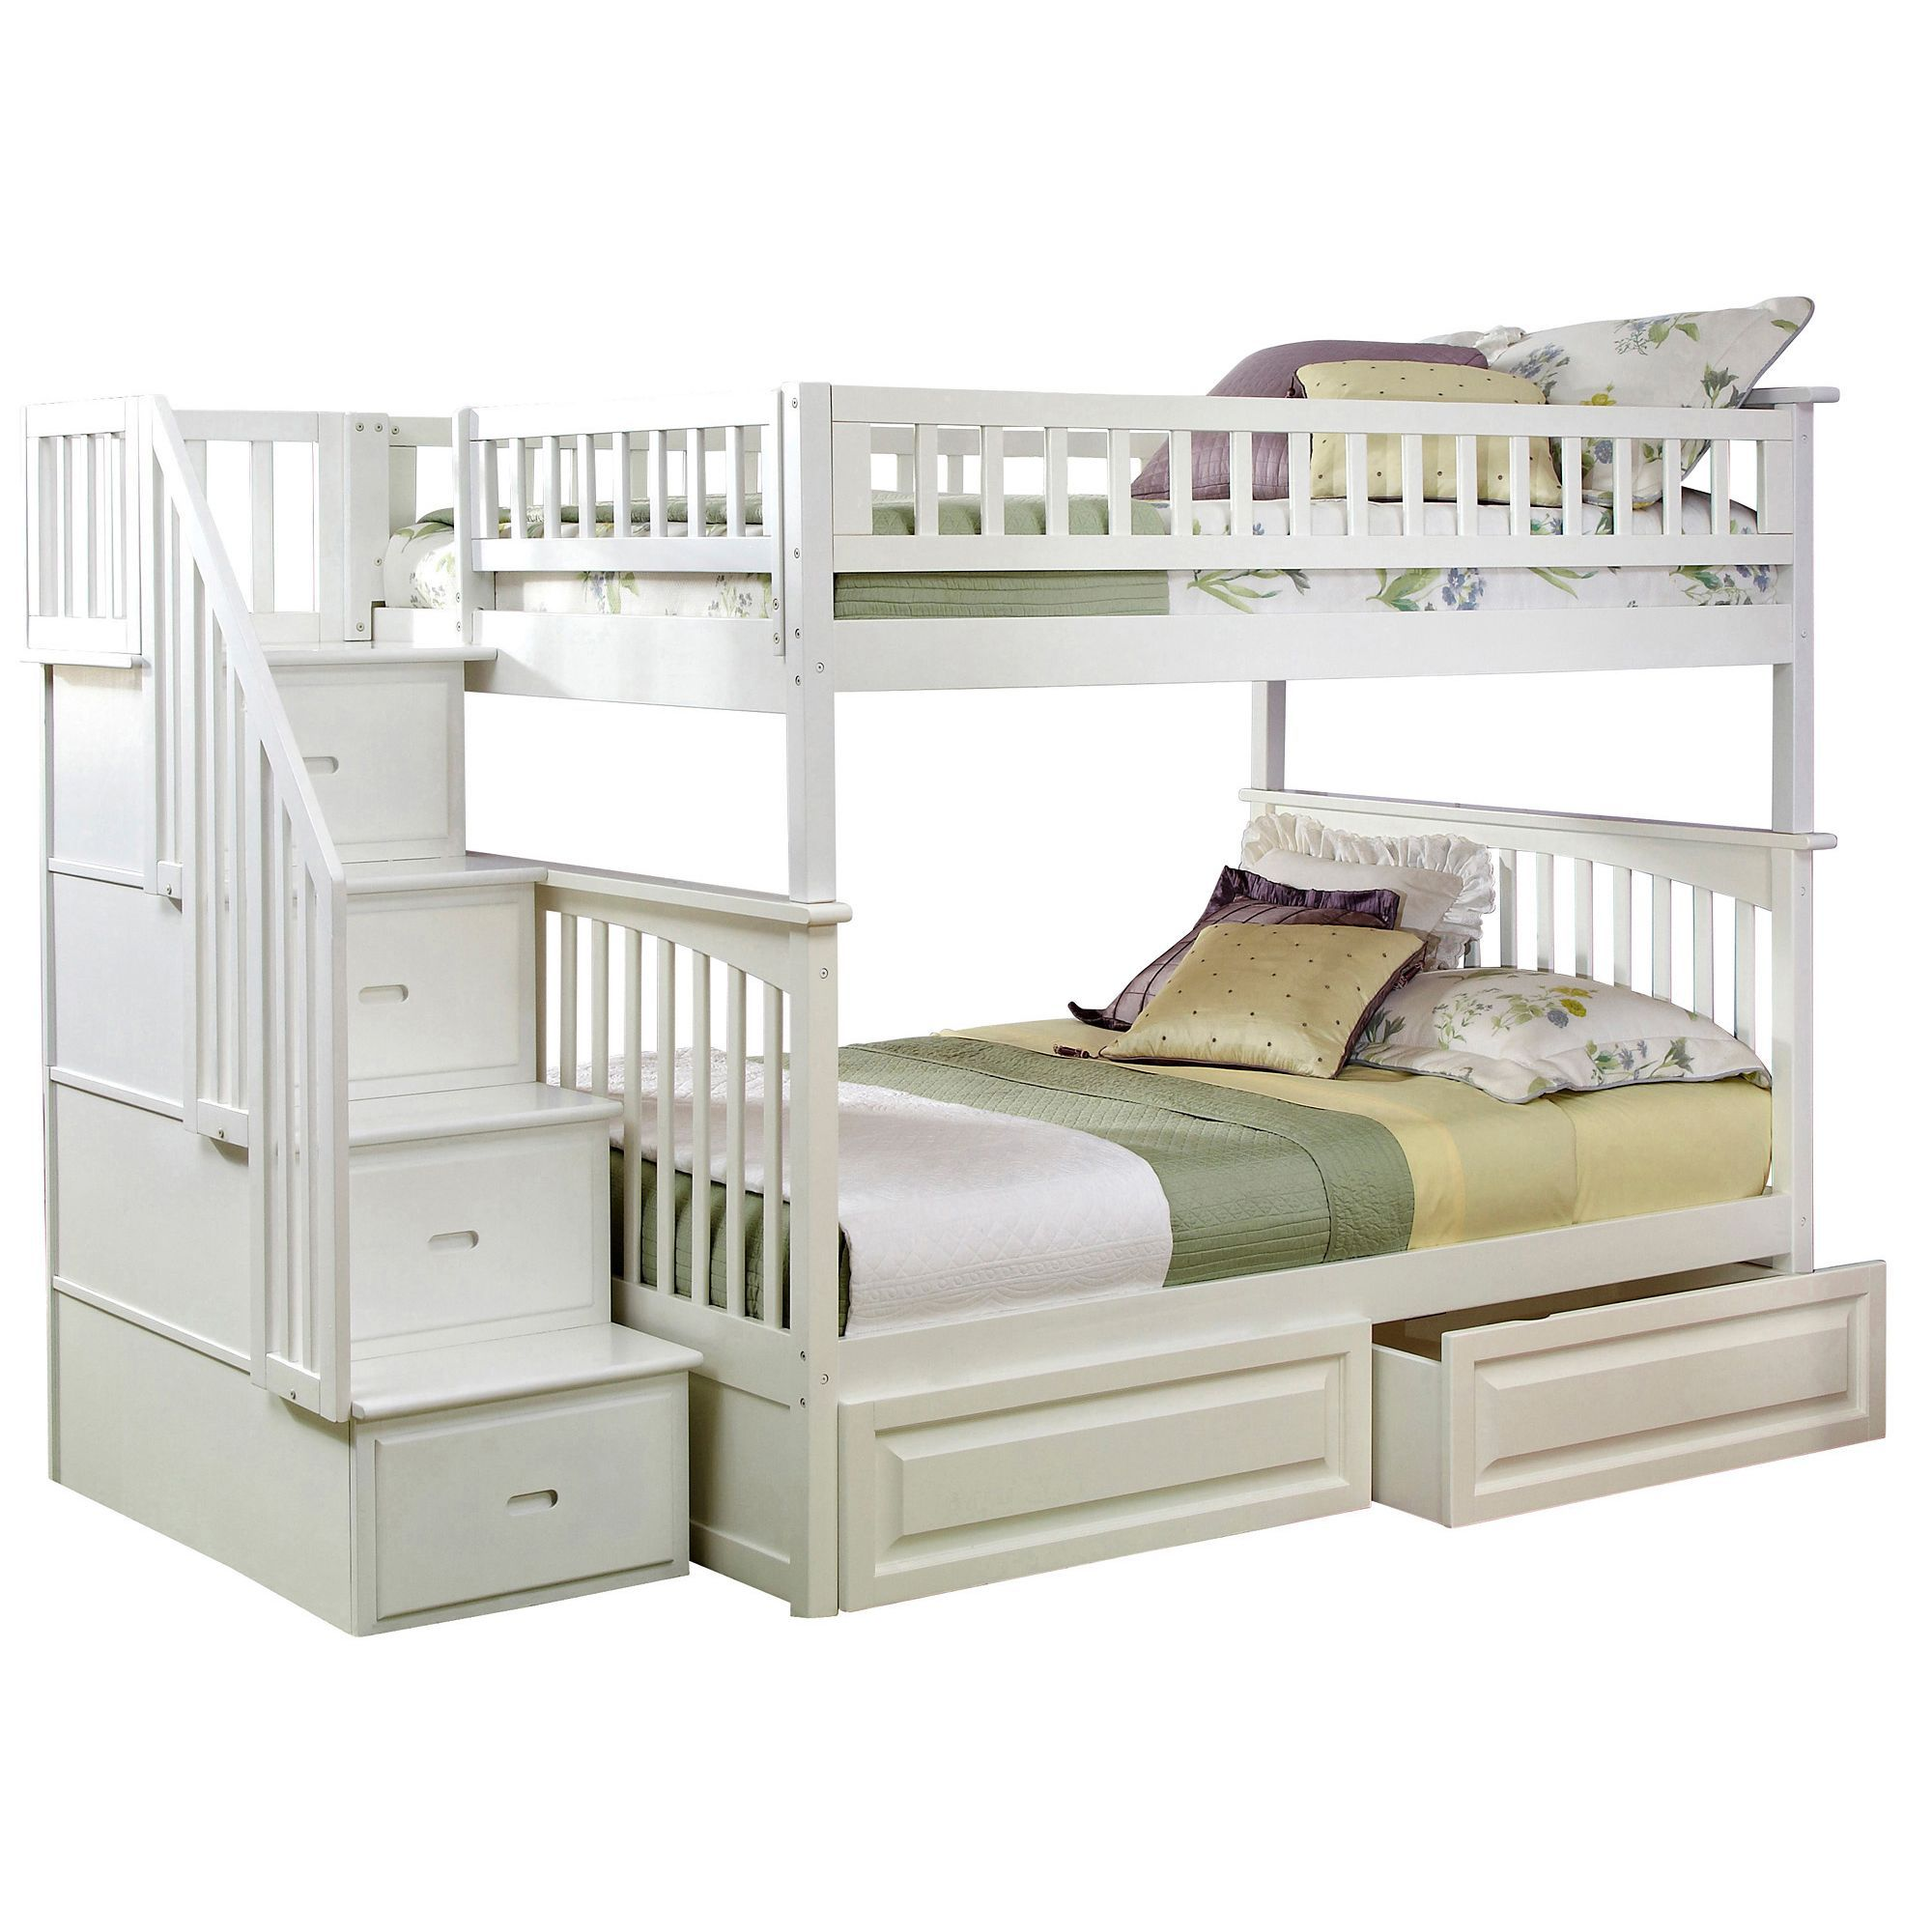 Atlantic Columbia Staircase Bunk Bed Full Over Full With